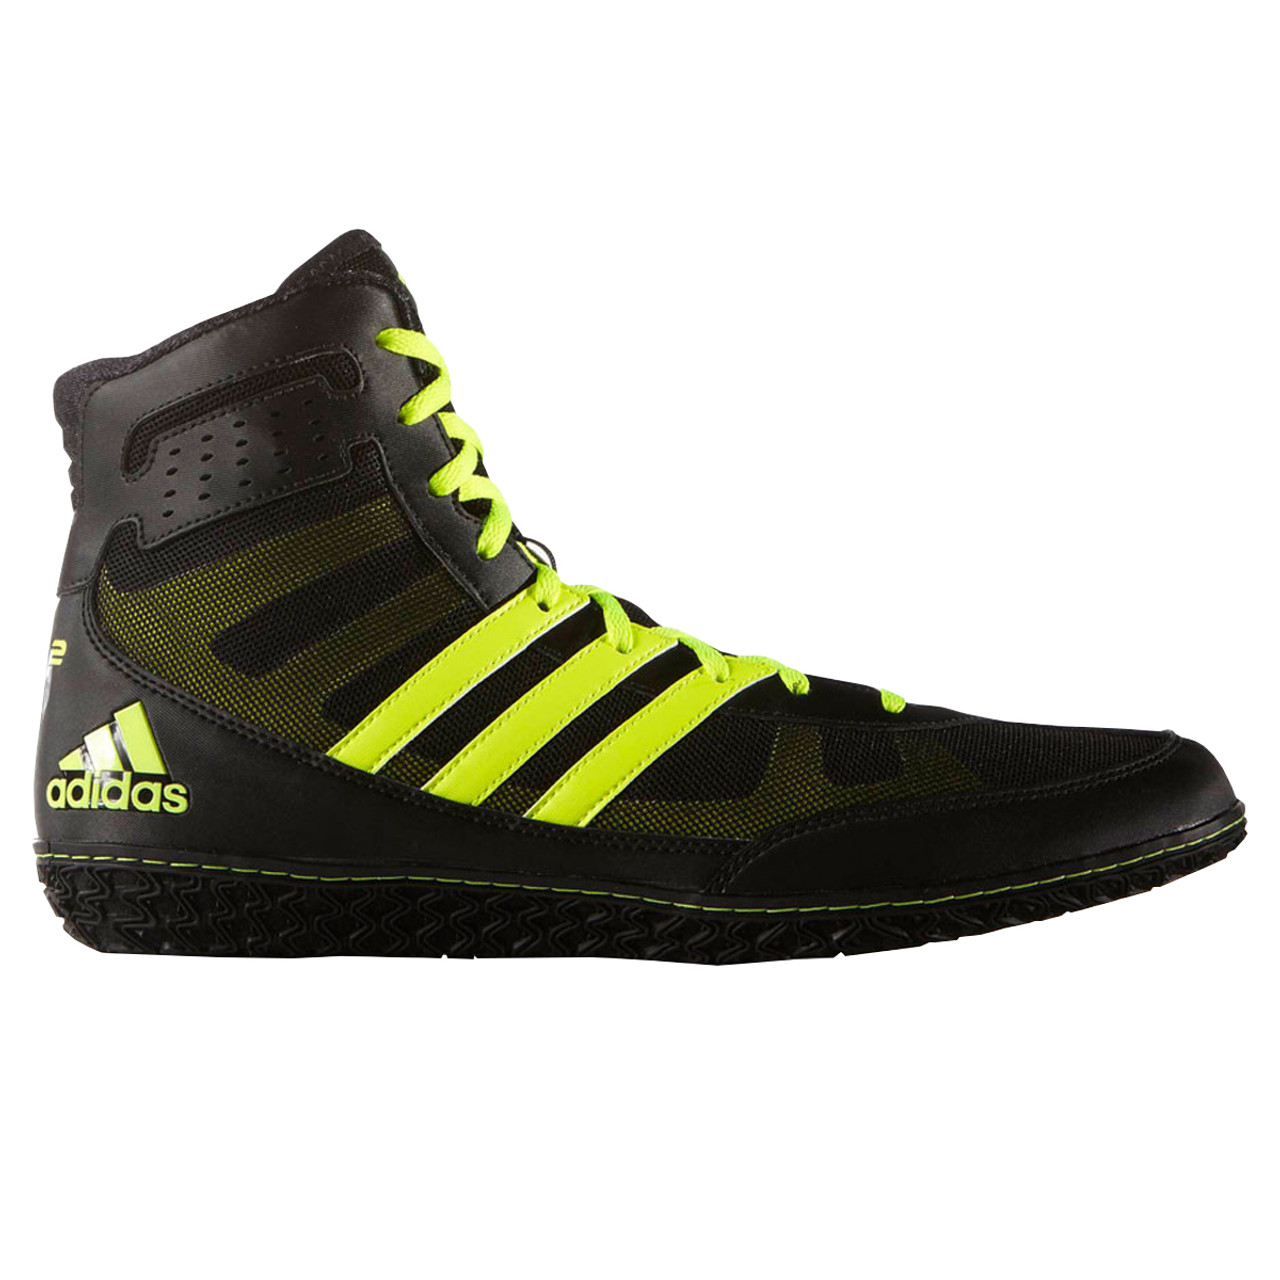 2c9772561bdb Adidas Mat Wizard 3 Senior Wrestling Shoes S77969 - Black